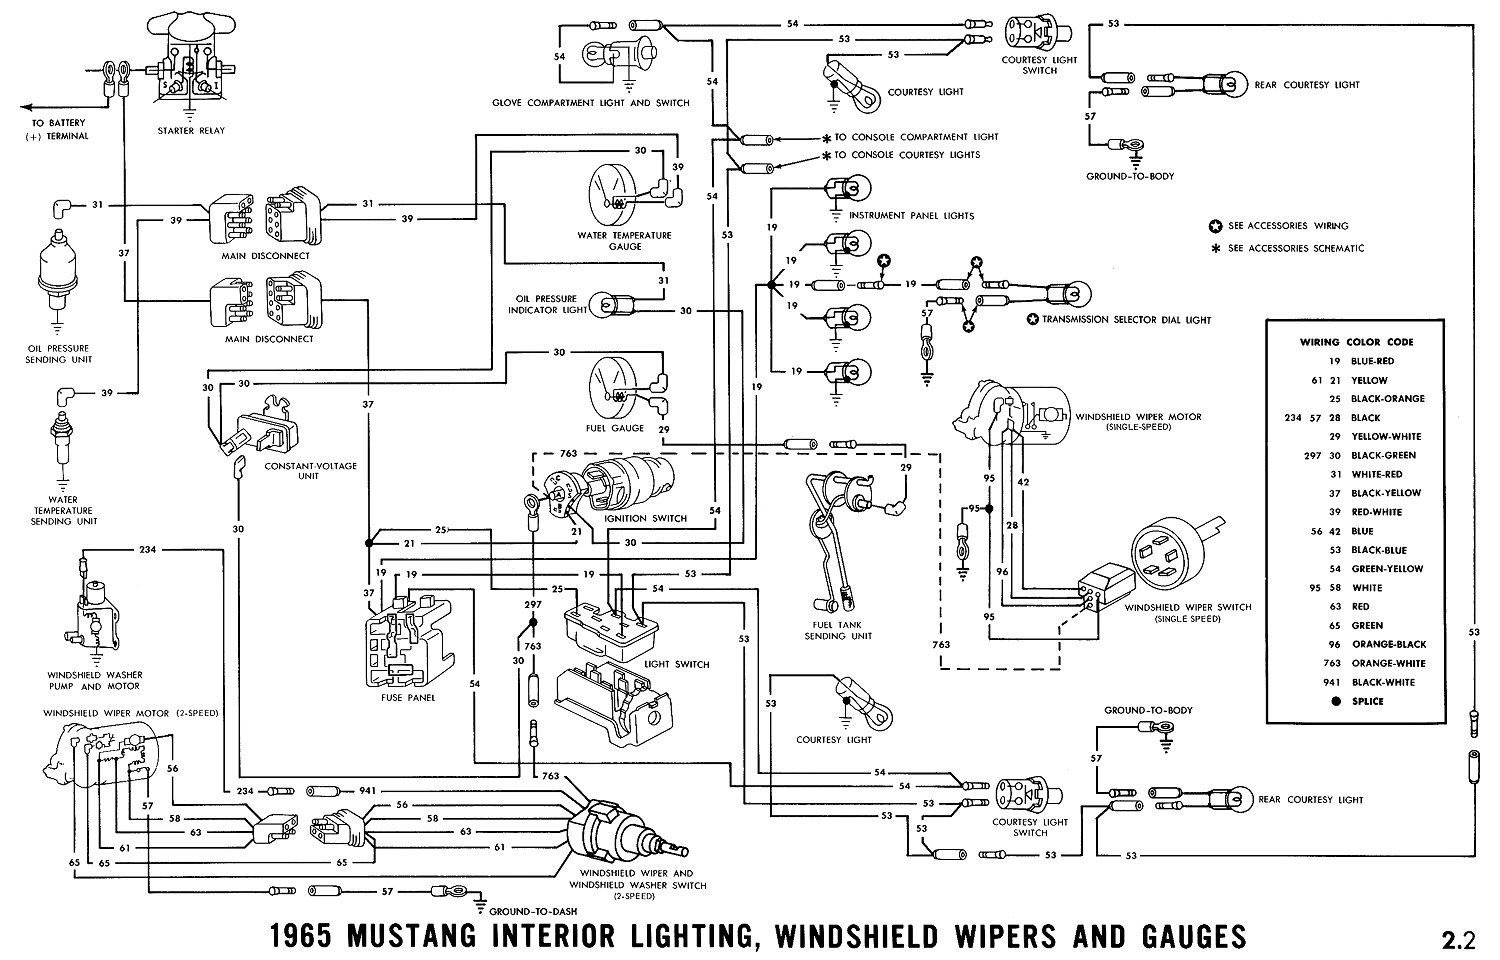 1965 mustang wiring diagrams average joe restoration 1970 Mustang Fuse Block Diagram 1970 Mustang Fuse Box Diagram